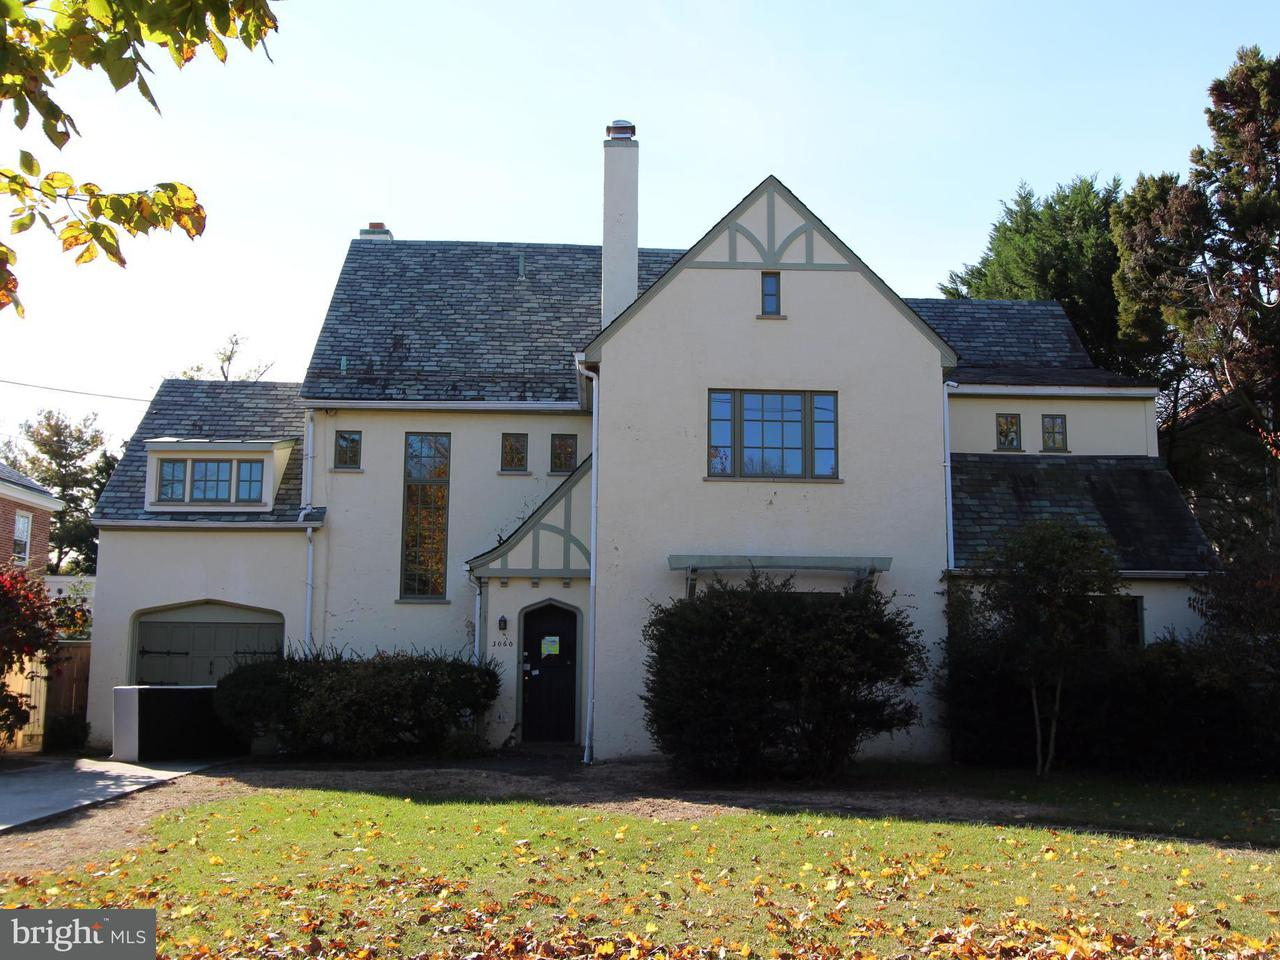 Single Family Home for Sale at 3060 ELLICOTT ST NW 3060 ELLICOTT ST NW Washington, District Of Columbia 20008 United States